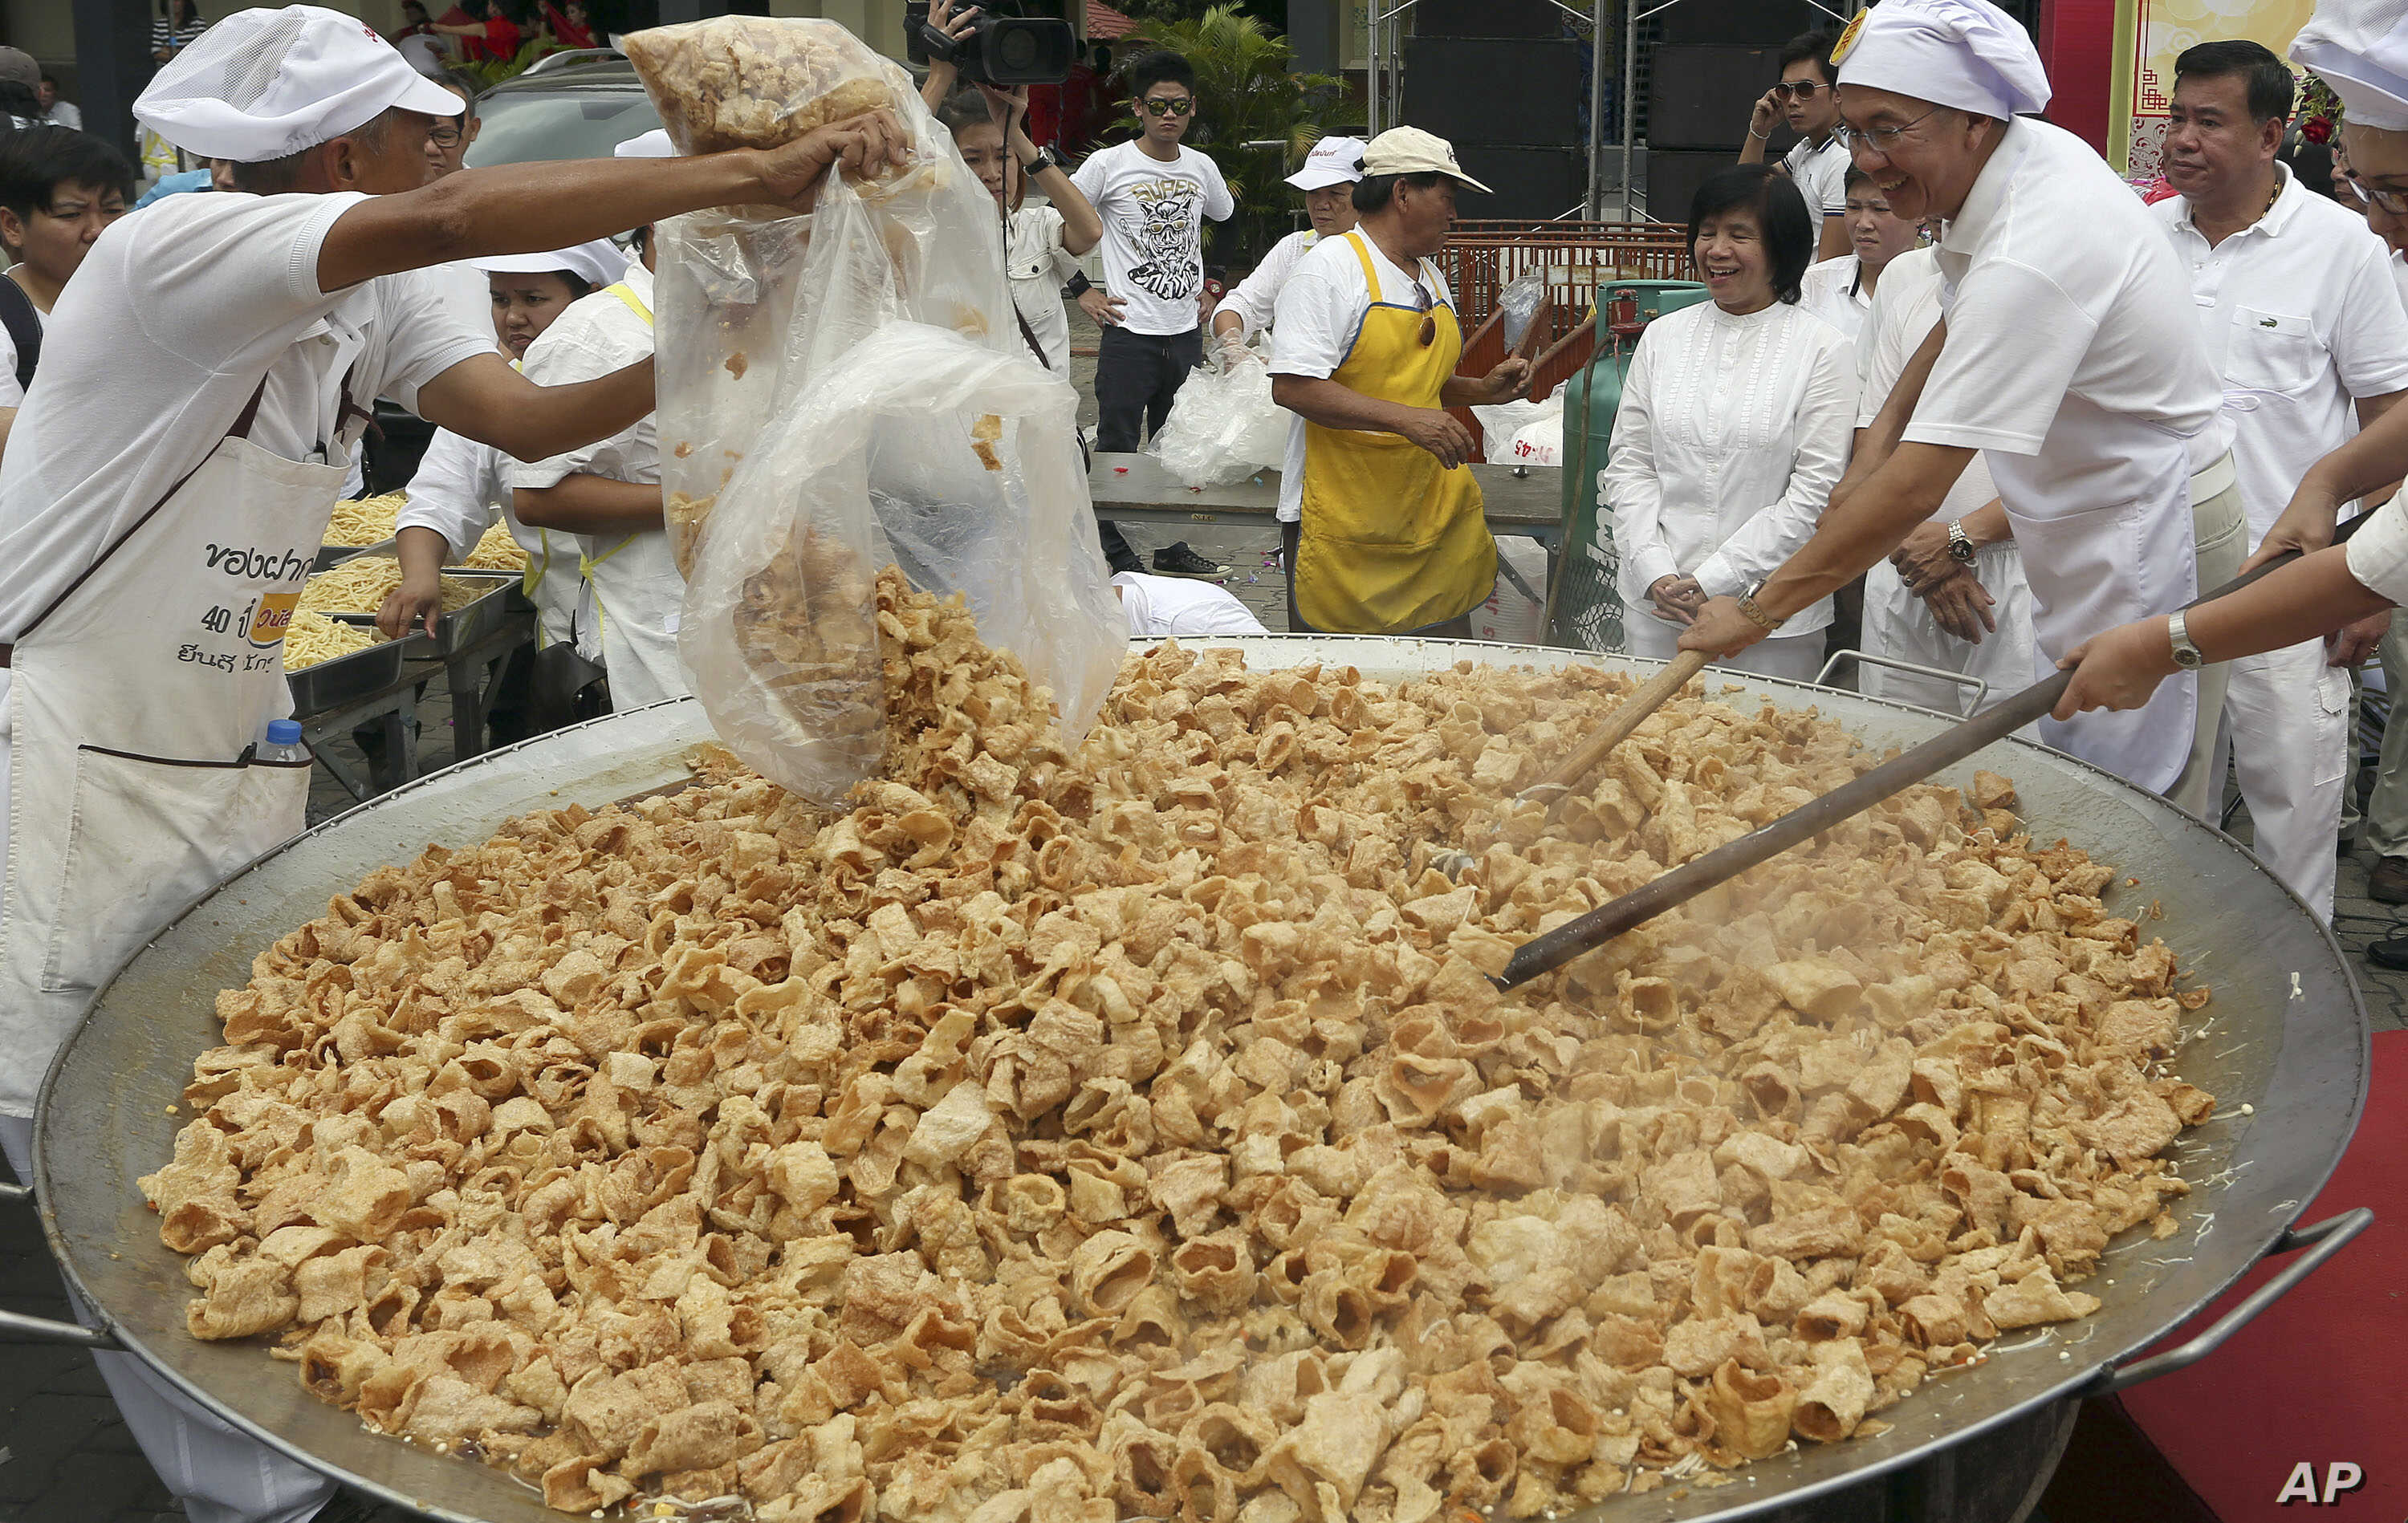 Thai chefs cook vegetarian food from a giant cooking bowl during the vegetarian festival celebration in Chiang Mai province, northern Thailand, Wednesday, Sept. 24, 2014.